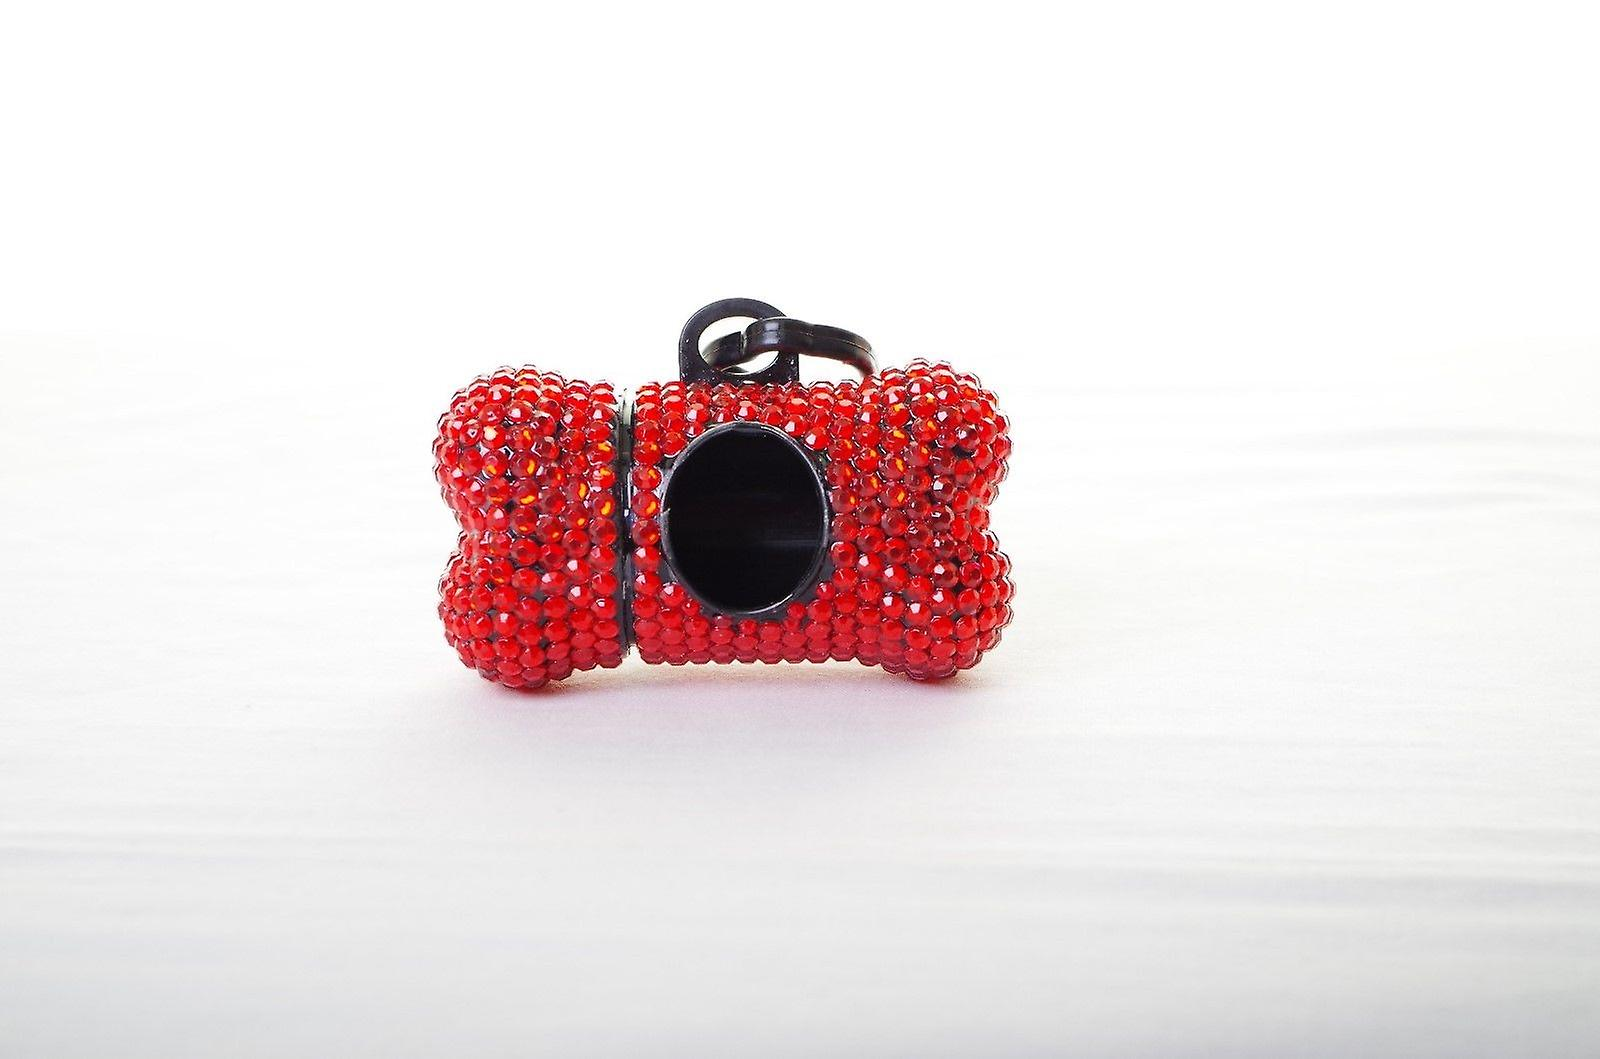 Red Crystal Rhinestone Bone shaped Waste Bag Dispenser